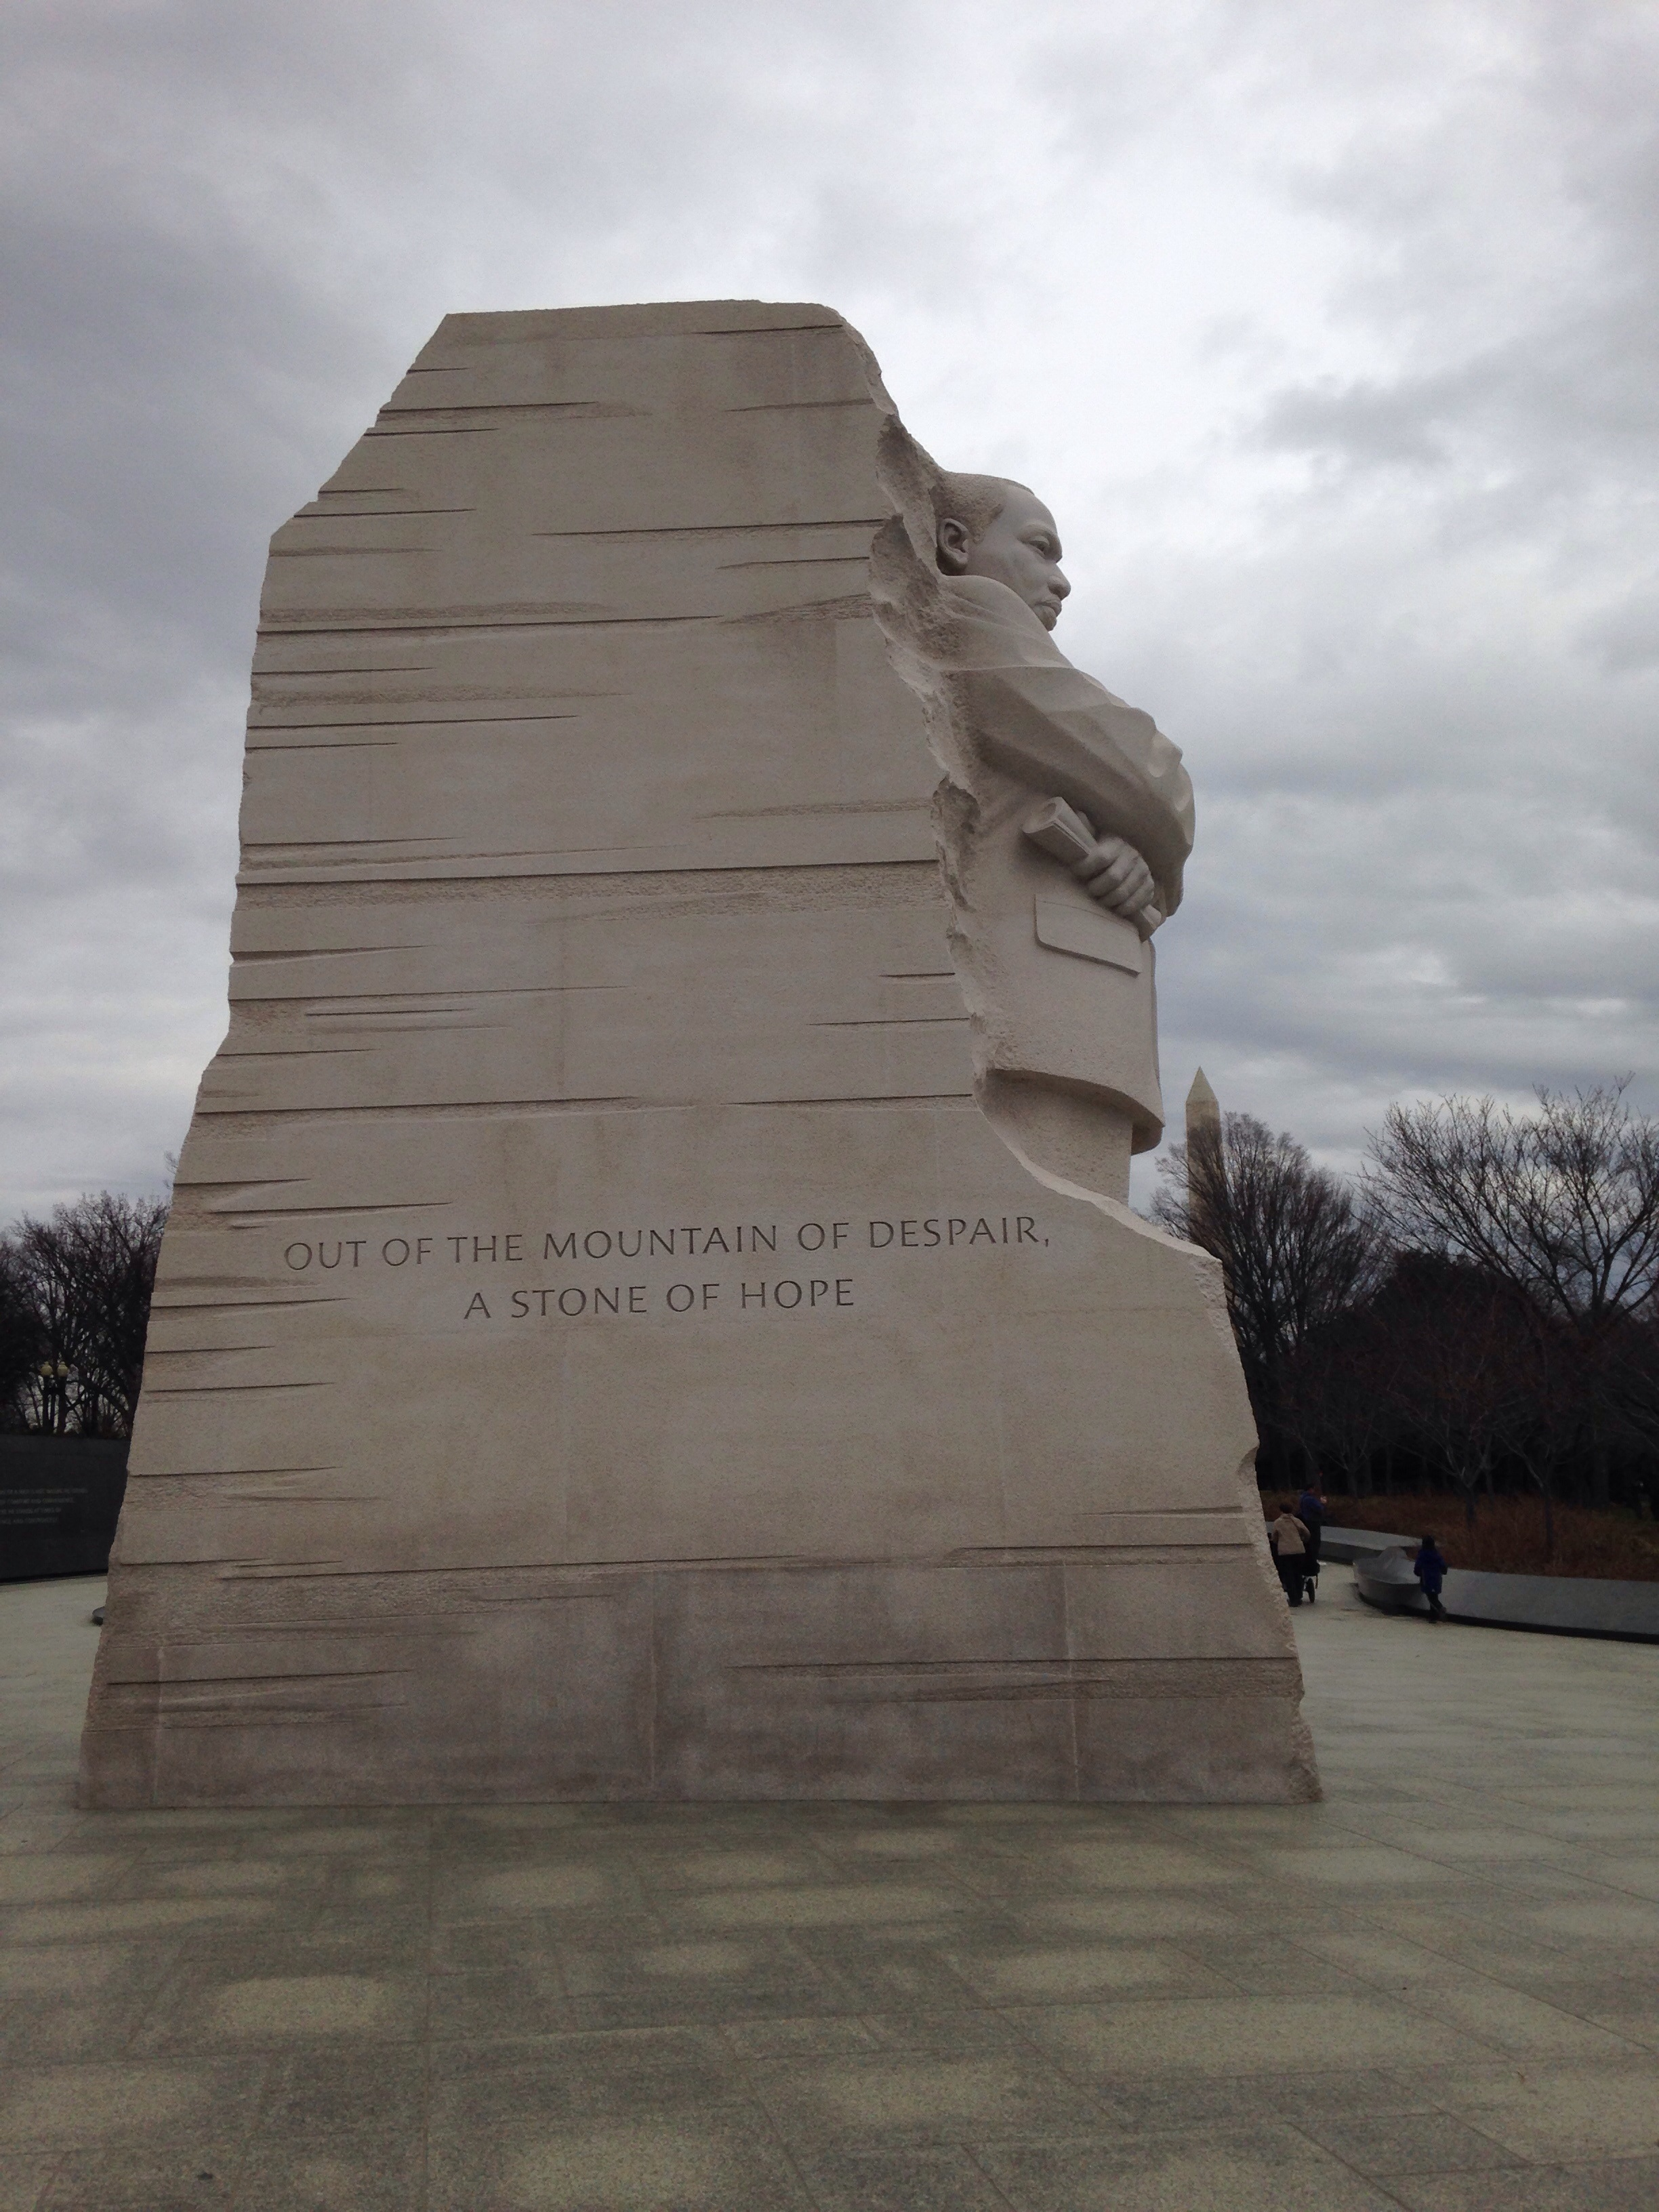 A side view of the memorial. Behind the doctor king statue, stand two sides of a mountain.